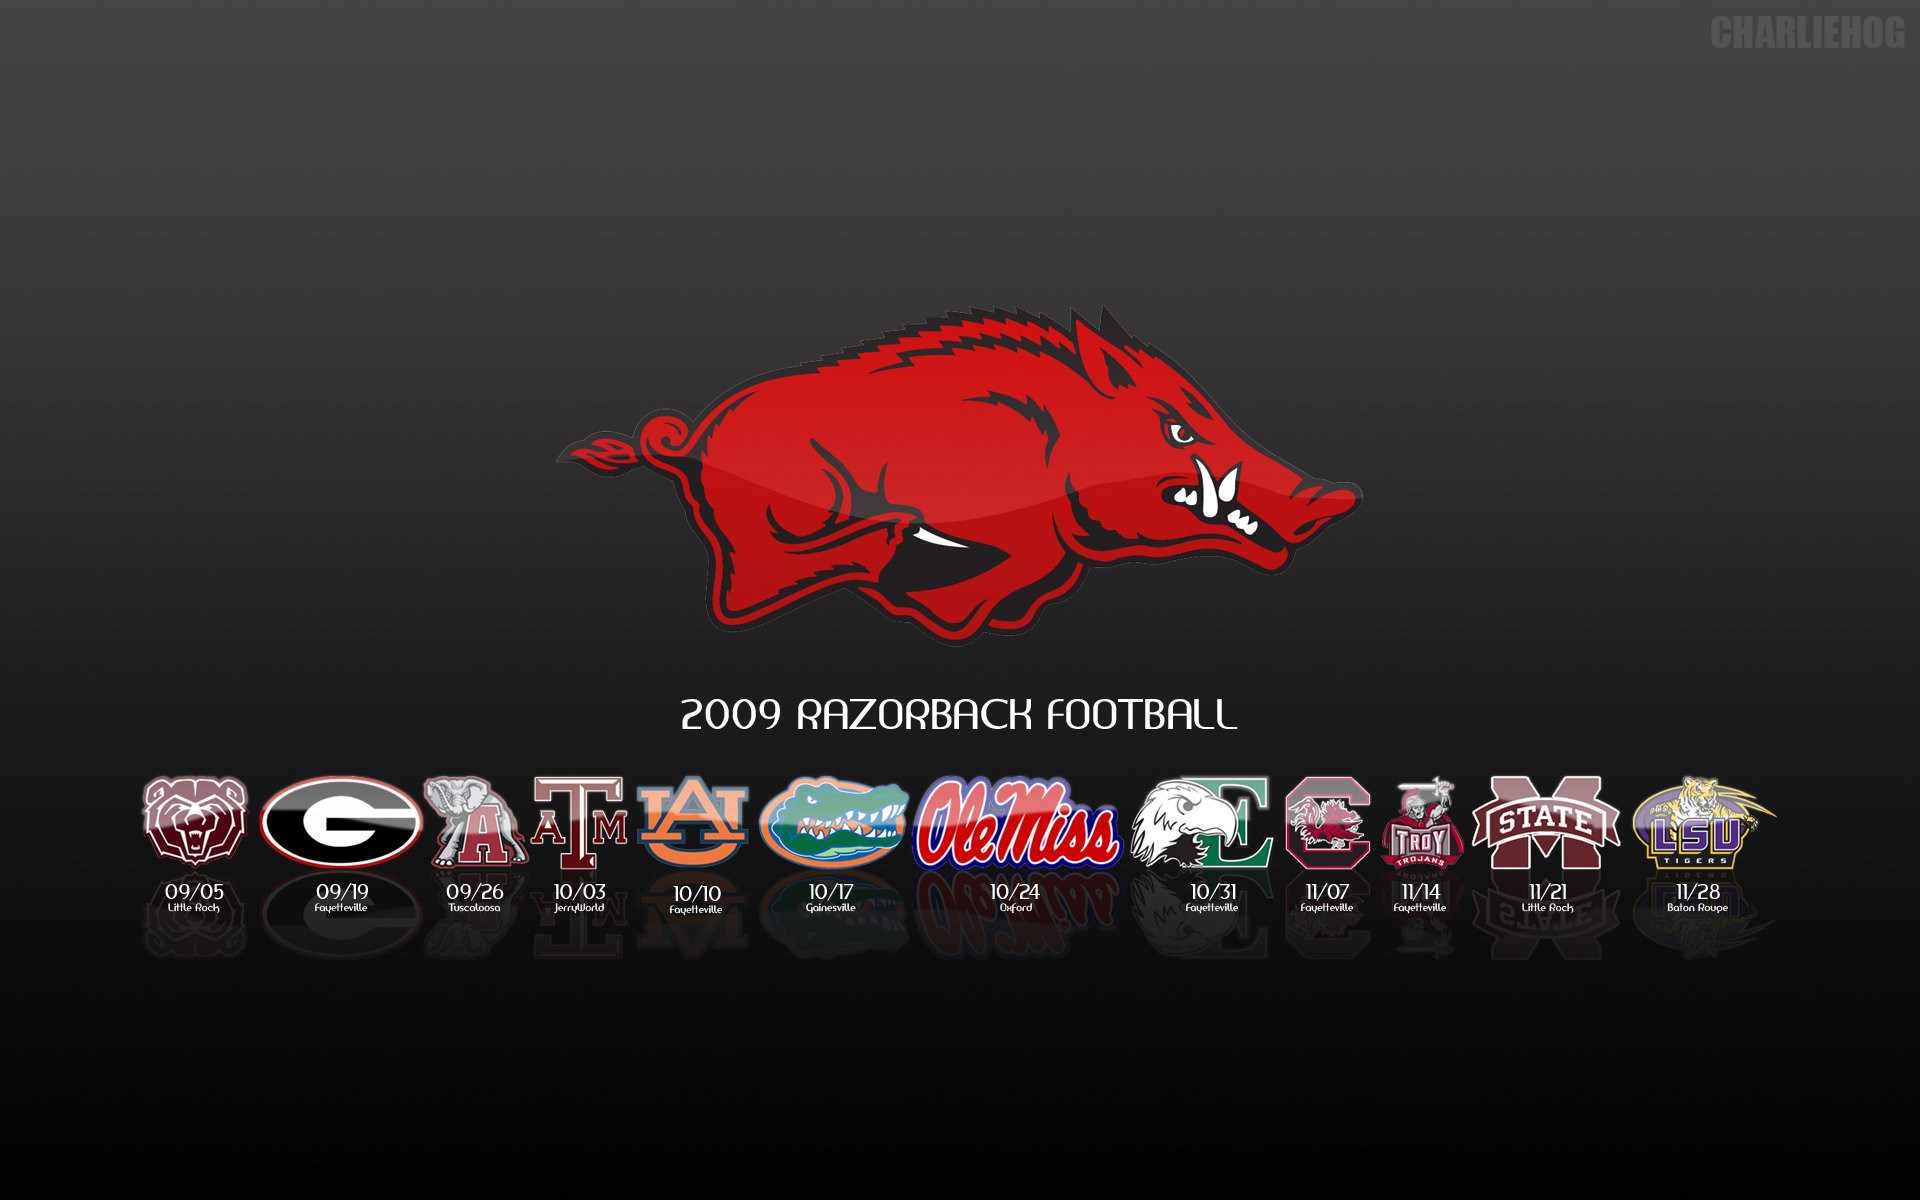 1920x1200 Arkansas Razorback Schedule by peacekid ...